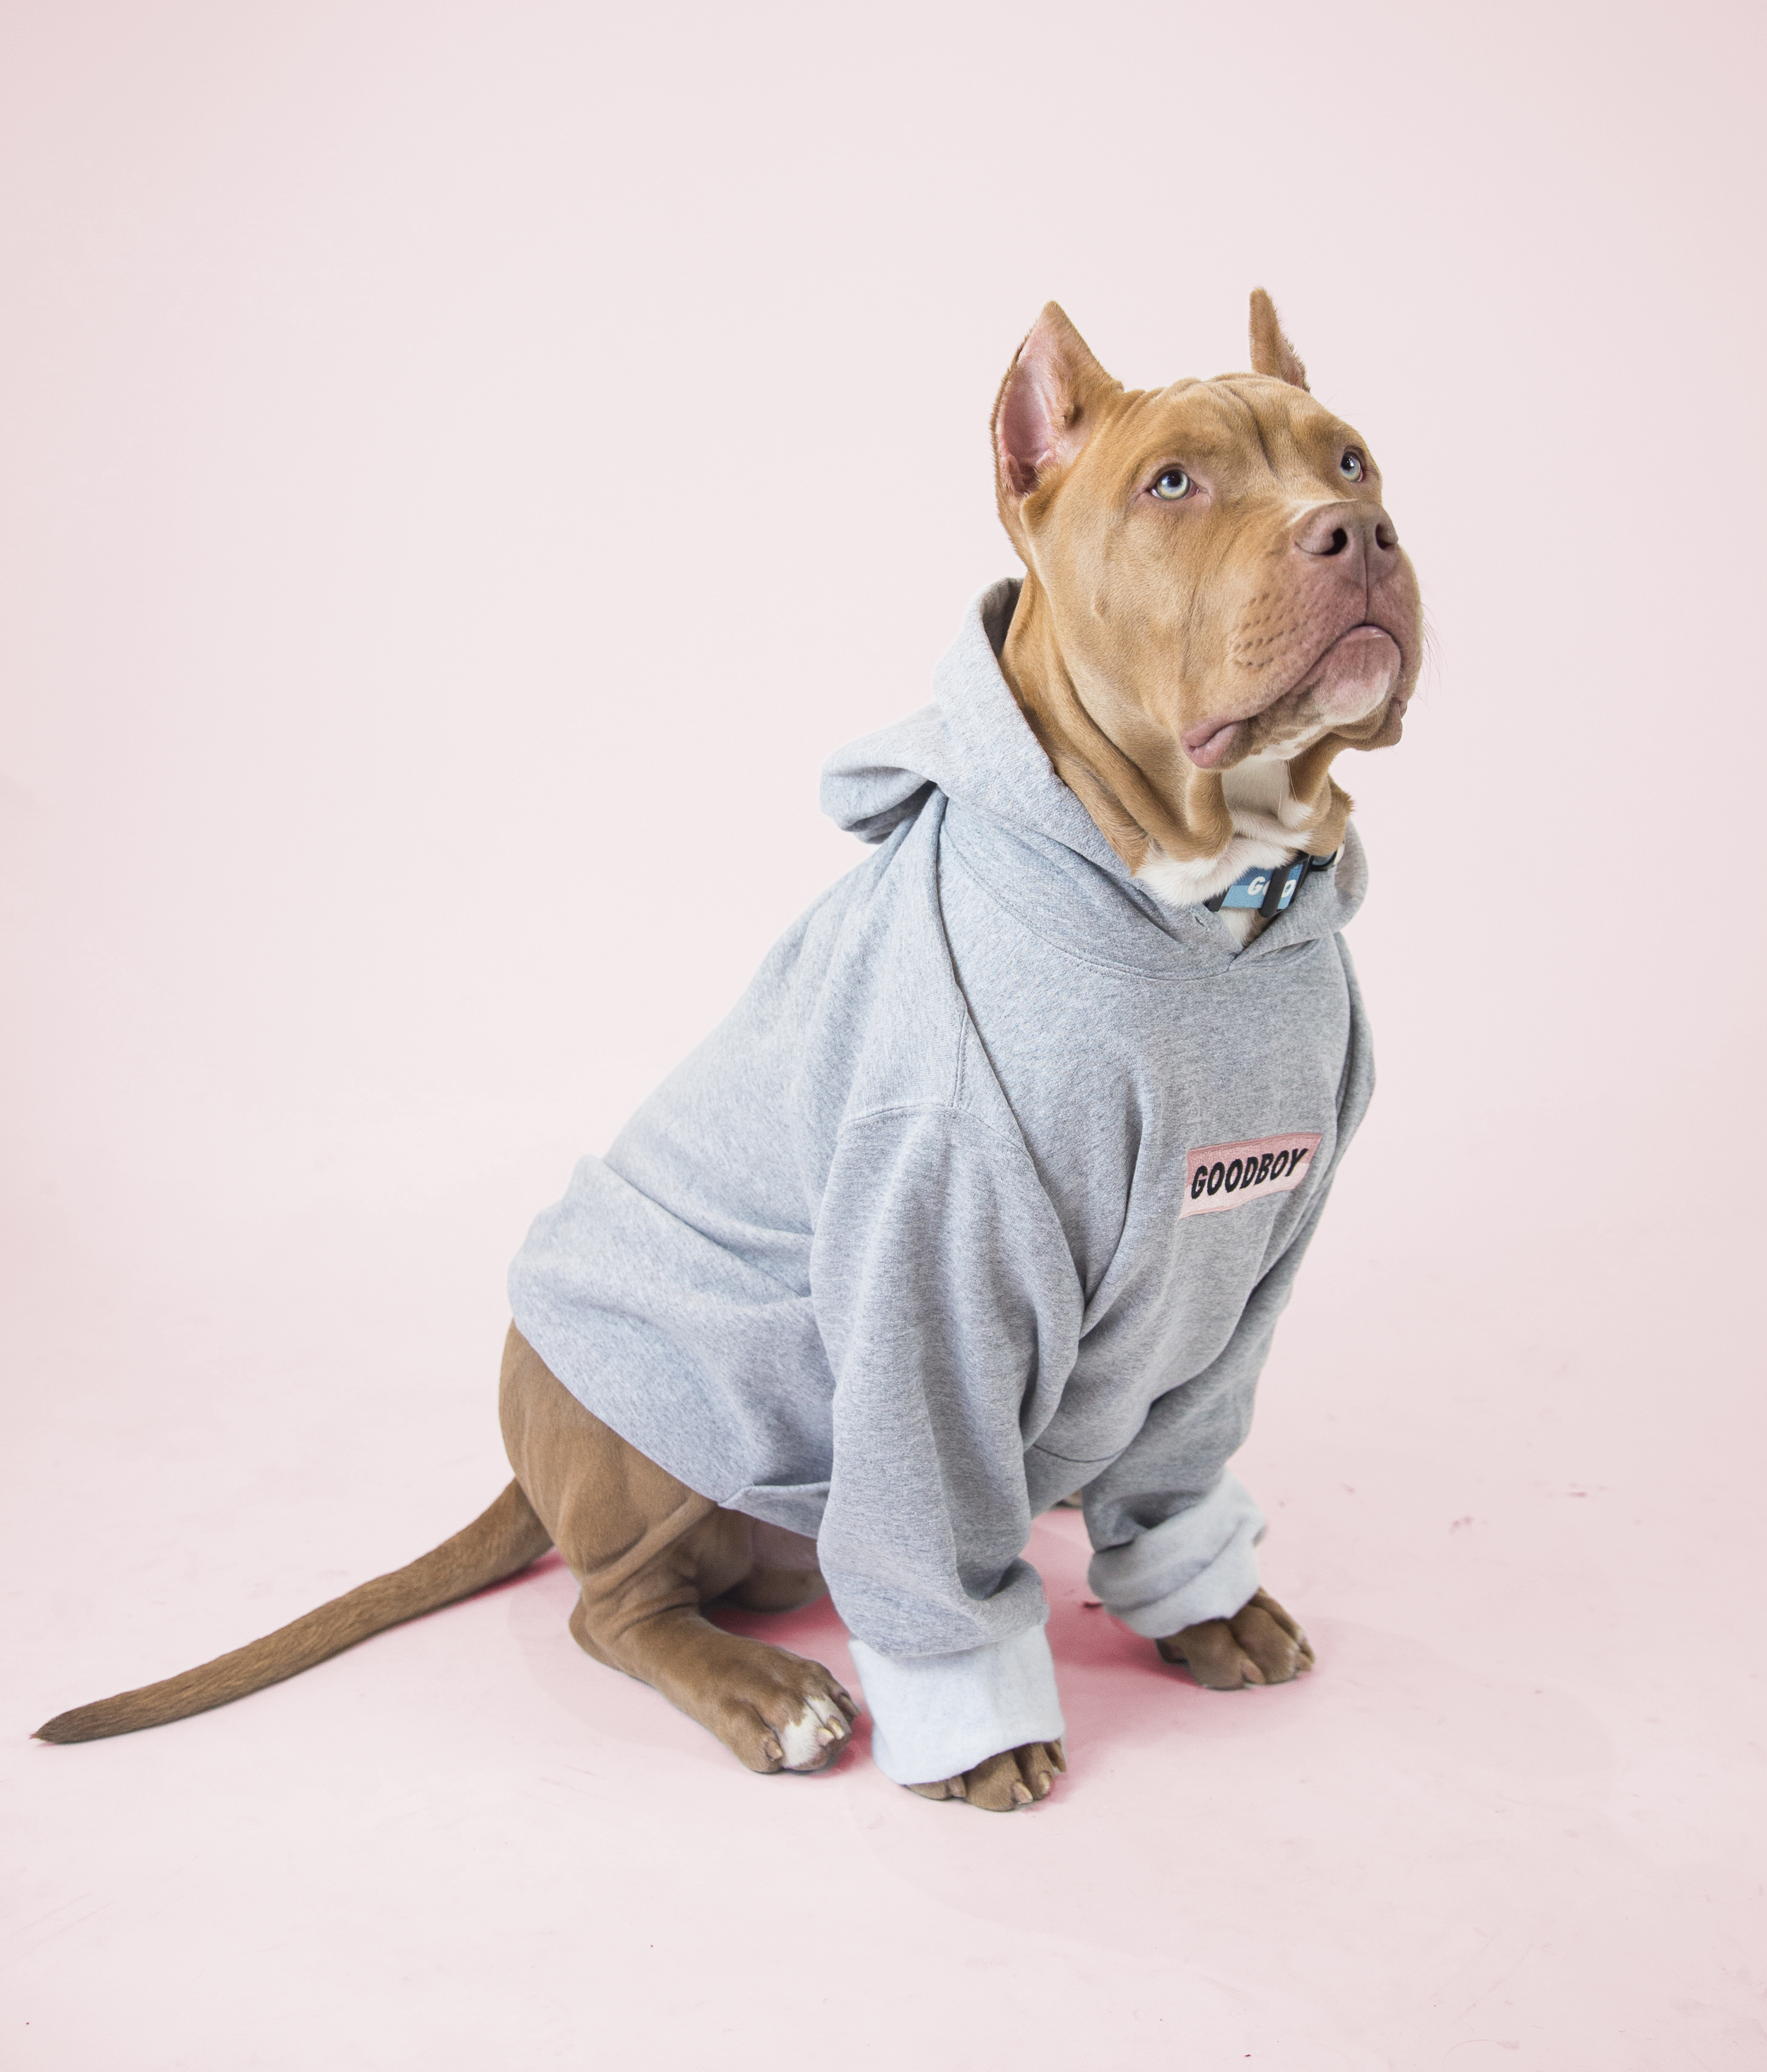 Favourite Goodboy Swag - Koa can rock just about anything due to his lean physique. Although, not everything can fit his larger build. His favourite is to chill out in his Goodboy Hoodie. He loves how comfy it is, and not to mention how cool he looks. We'd have to agree.